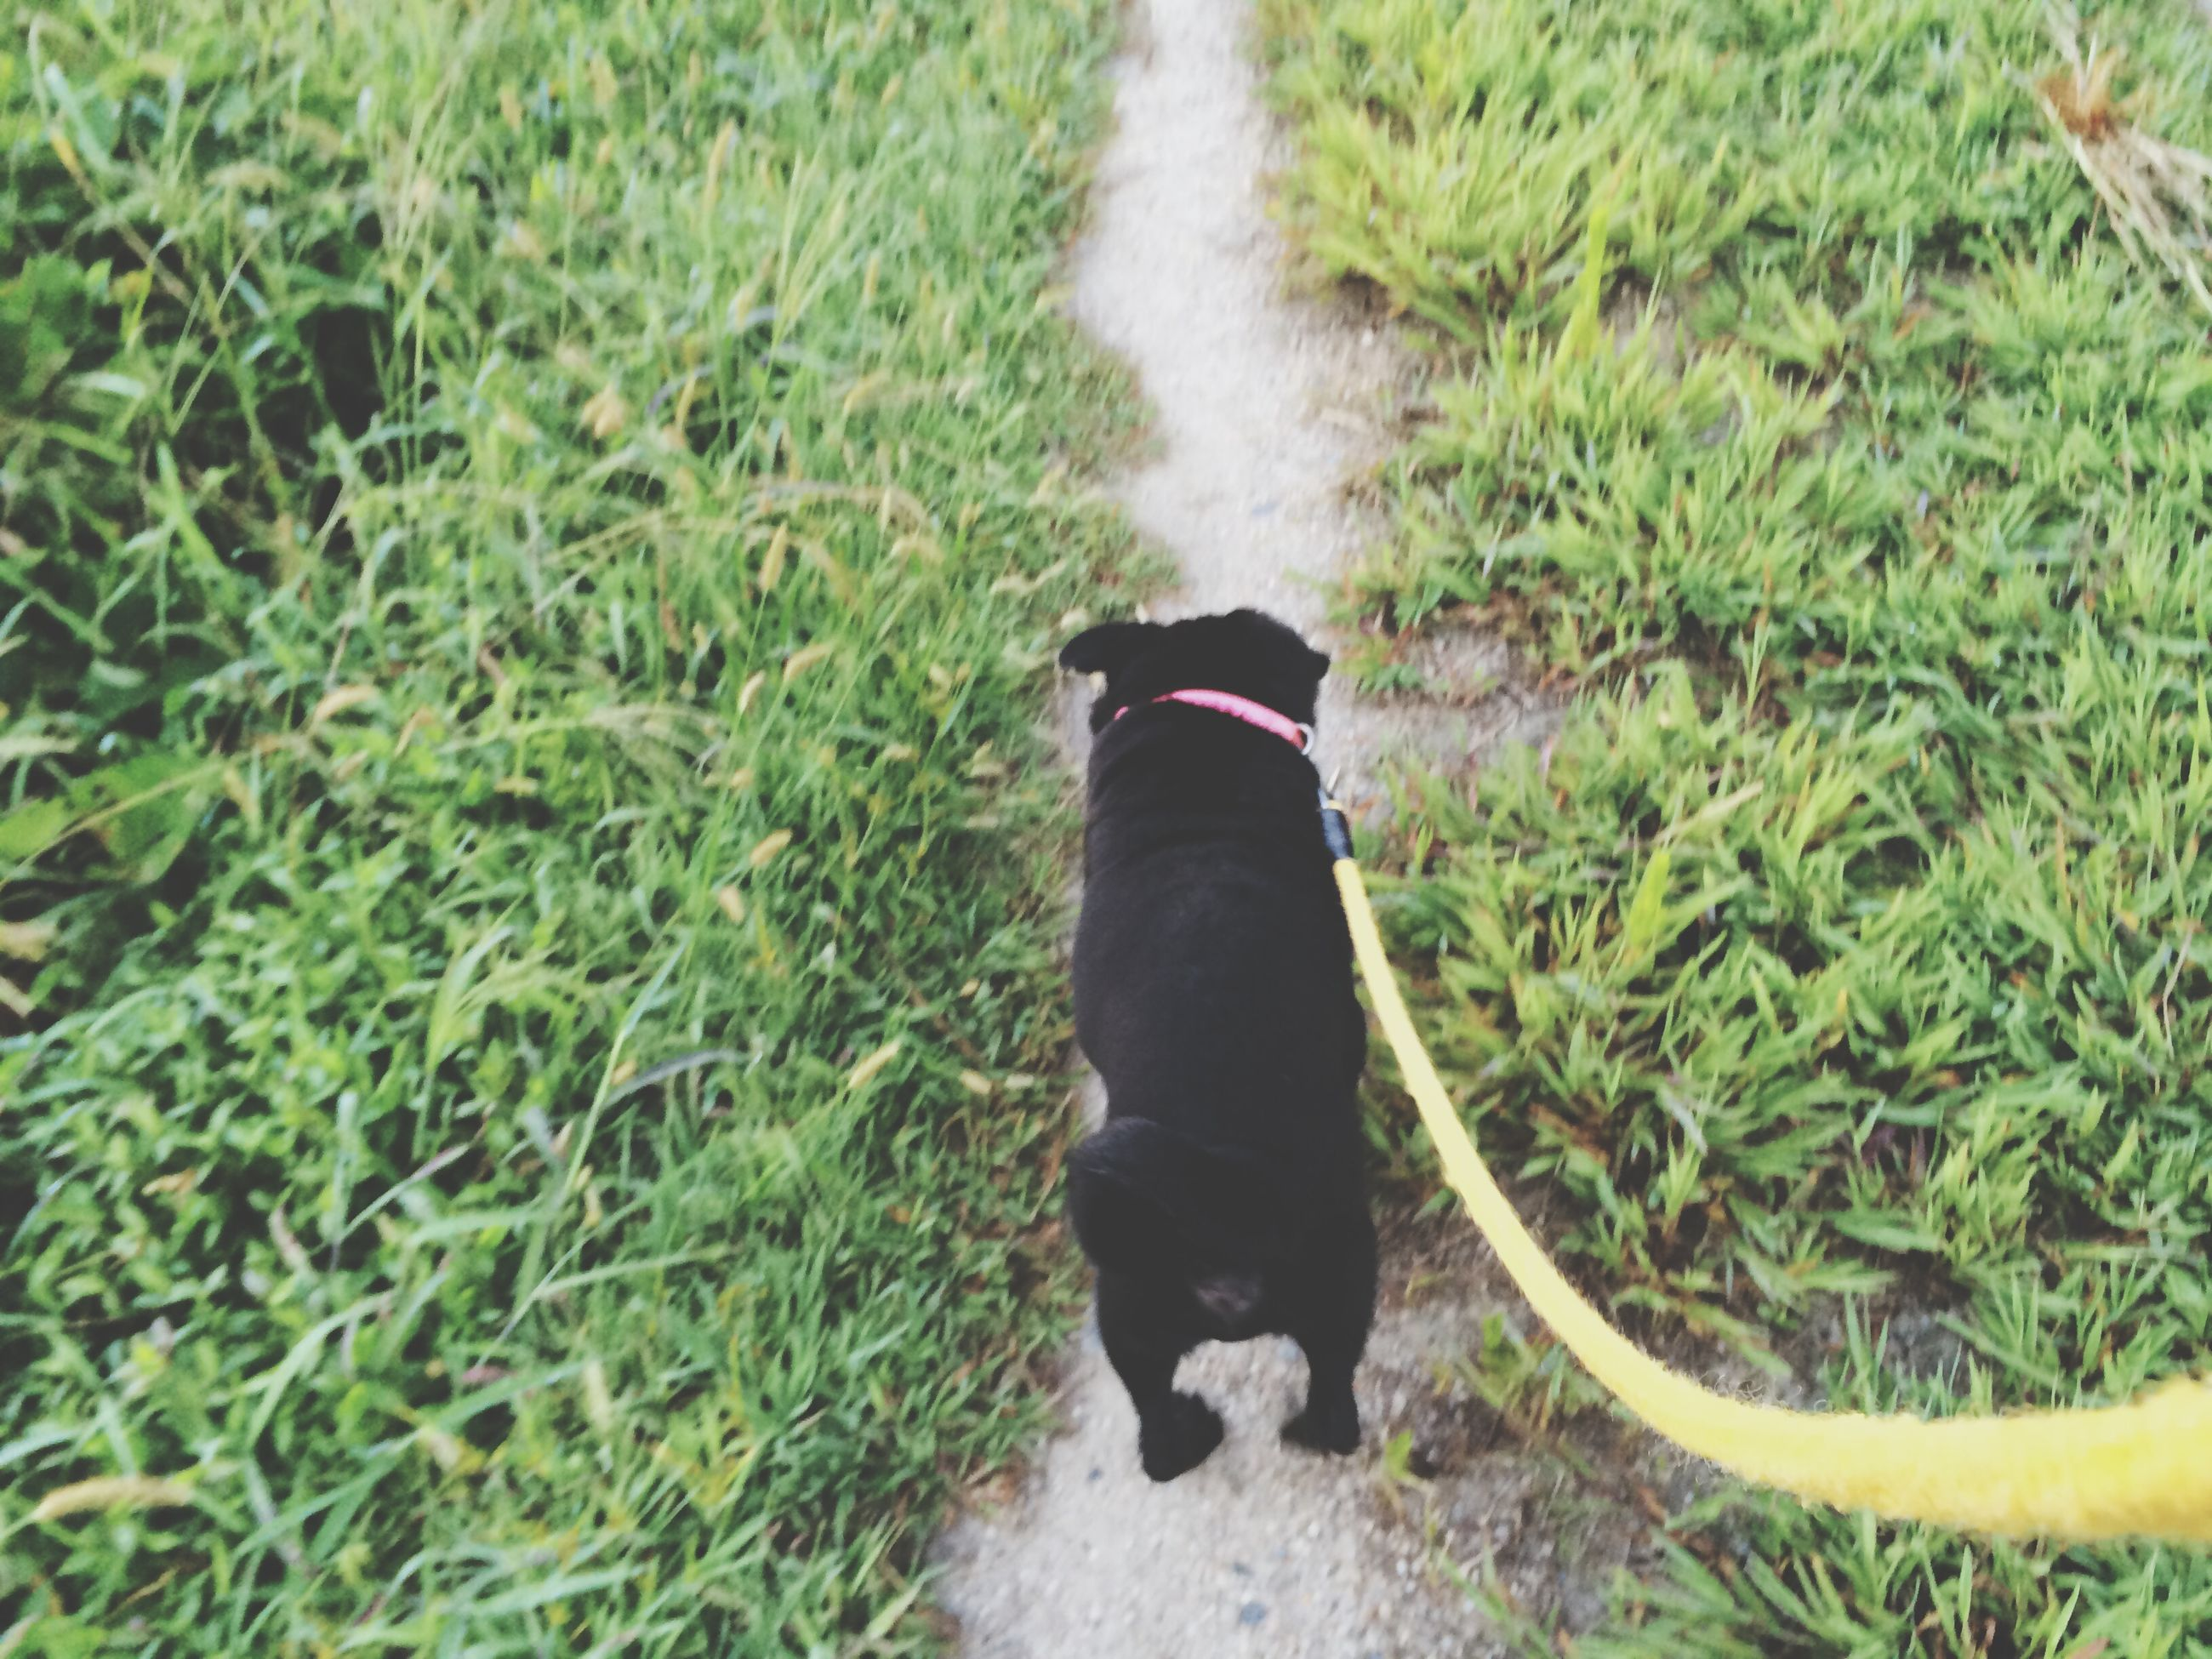 grass, high angle view, field, low section, grassy, green color, standing, pets, person, dog, domestic animals, shoe, growth, plant, lifestyles, day, outdoors, nature